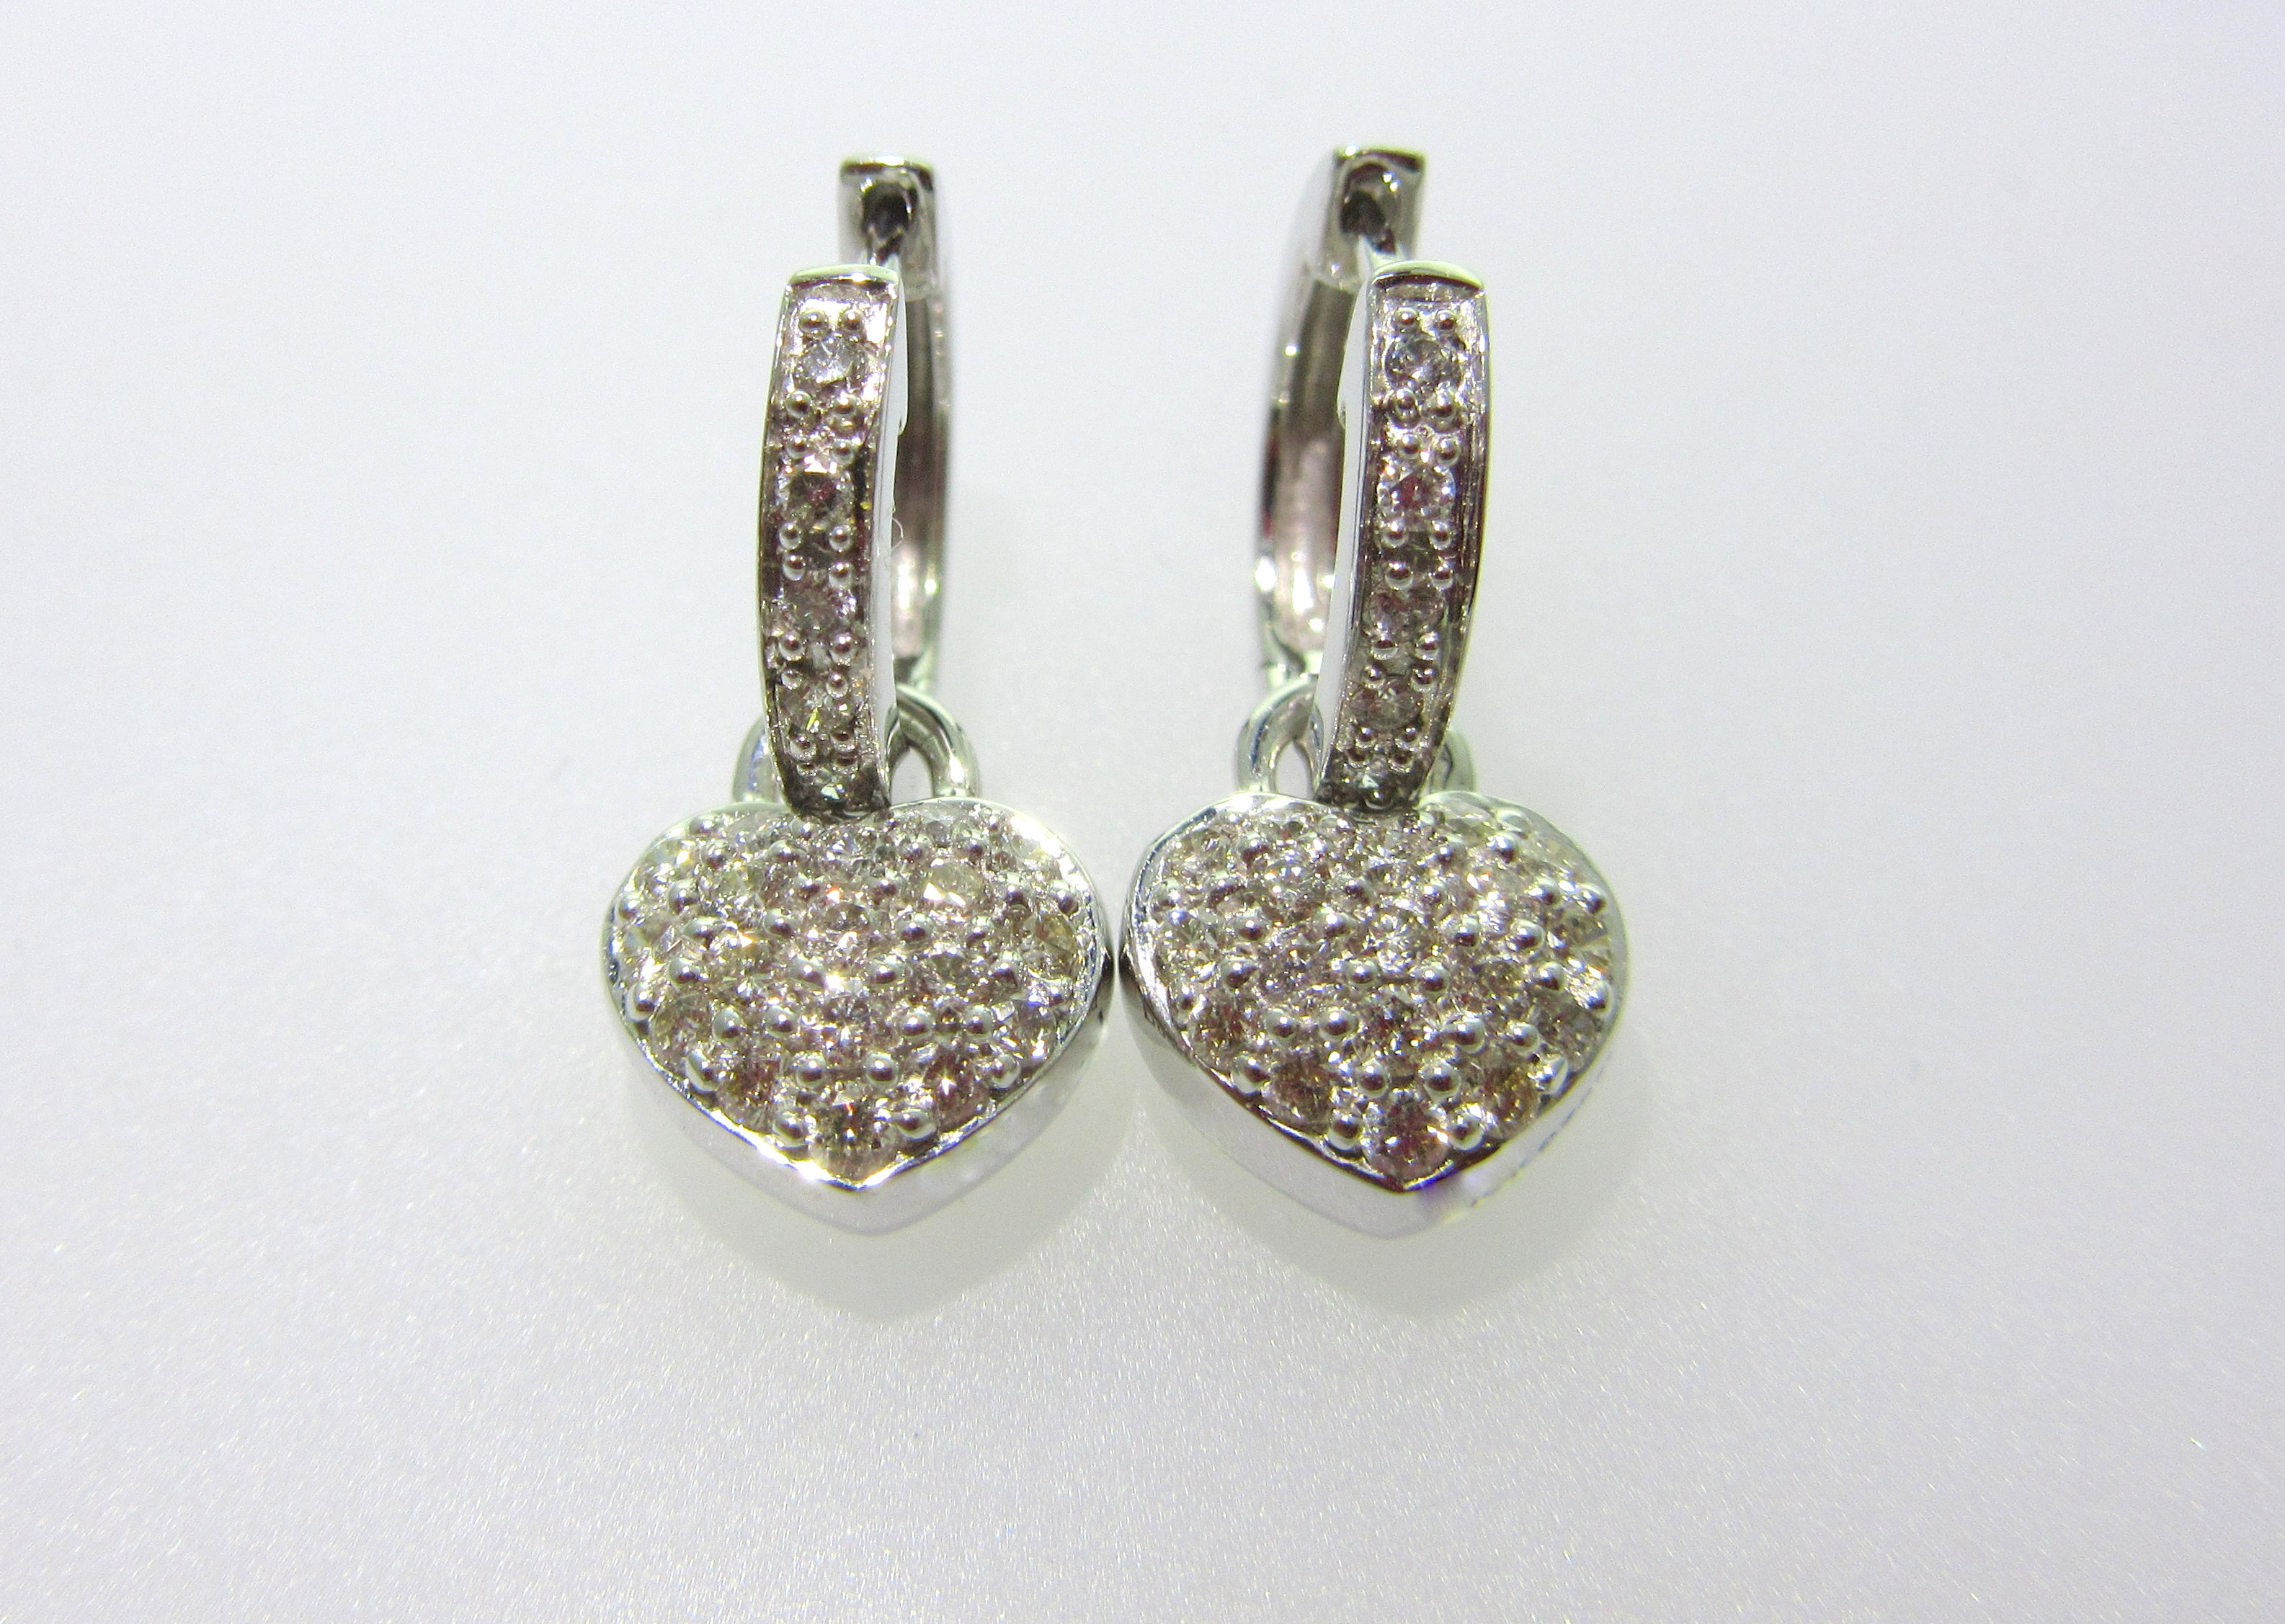 Heart Charm Diamond Earrings